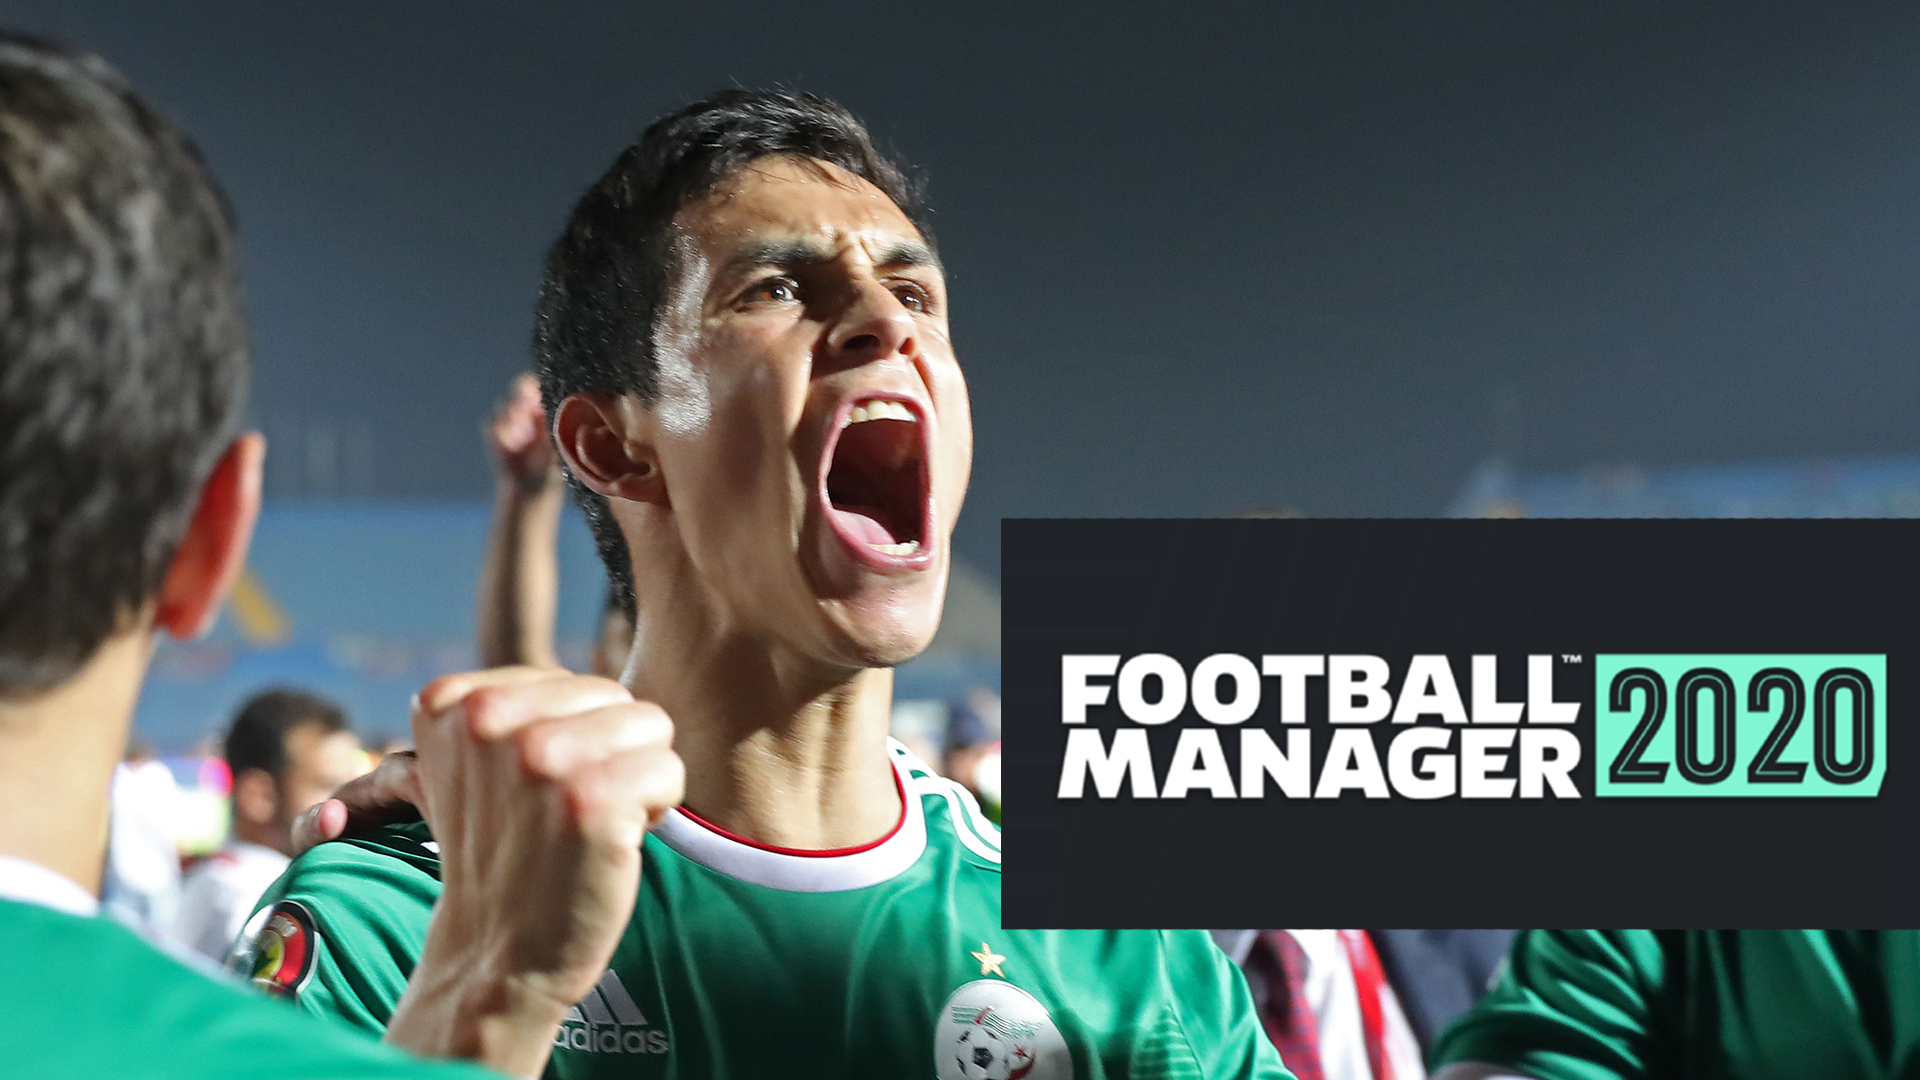 Football Manager 2020: Release date, new features, price, full game & devices